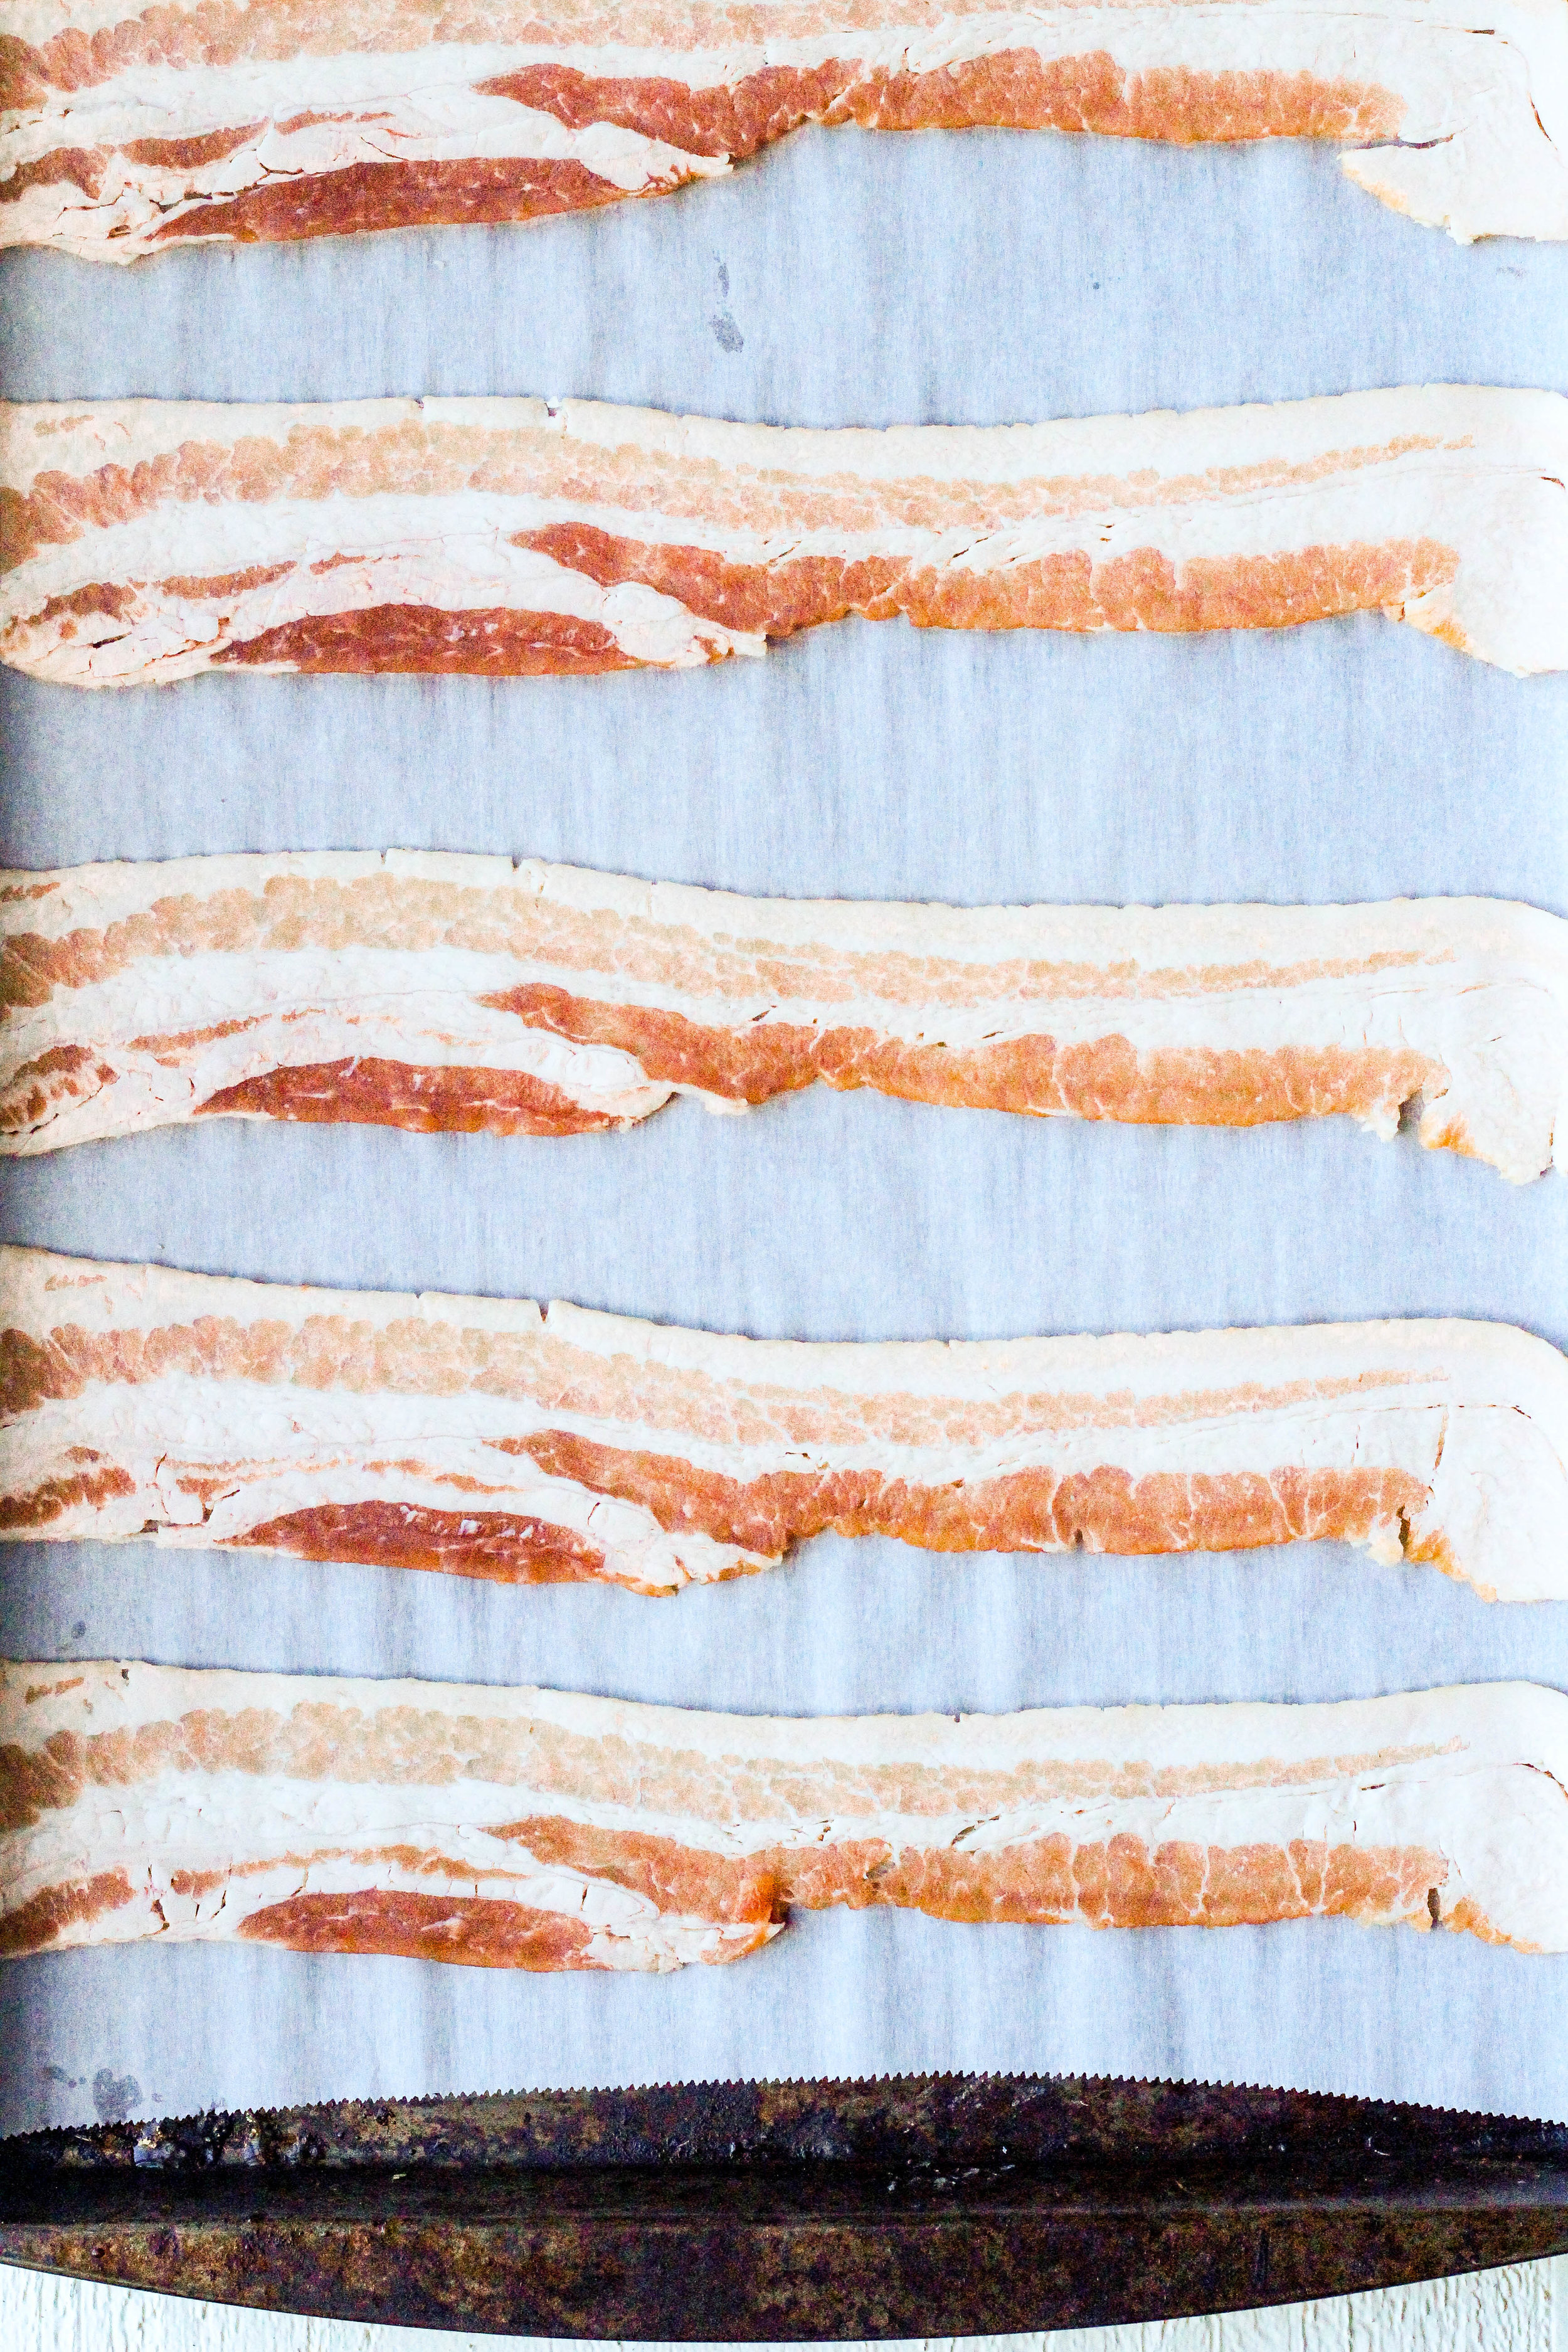 How To Make Perfect Bacon Every Time